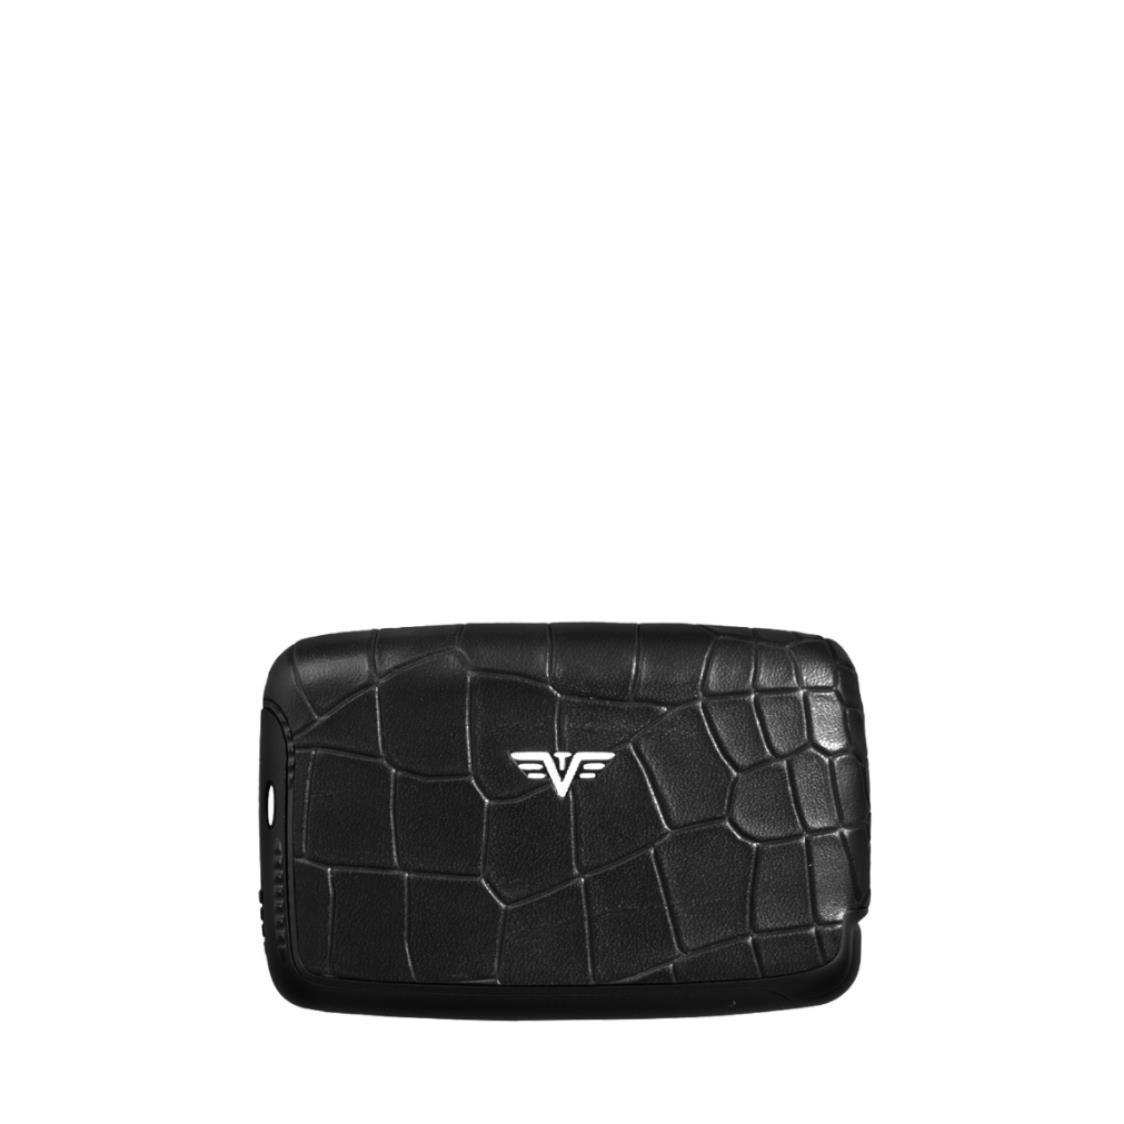 Card Case Nappa Croco Black Tassel